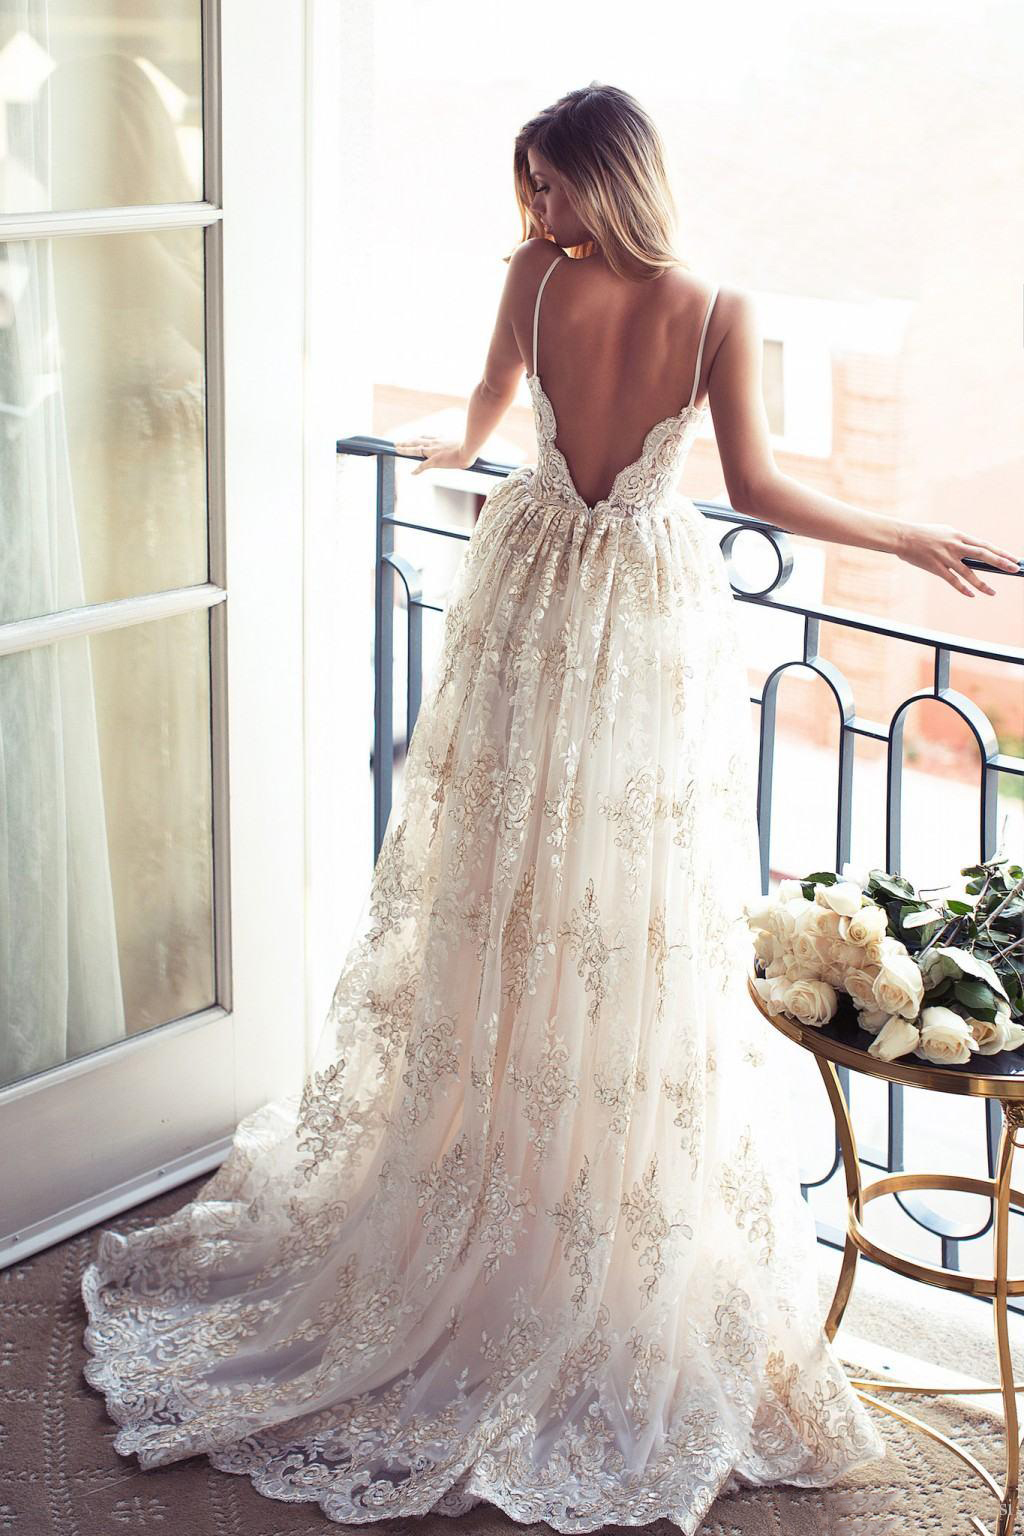 Boho Vintage Spaghetti Straps Long Backless Wedding Dress